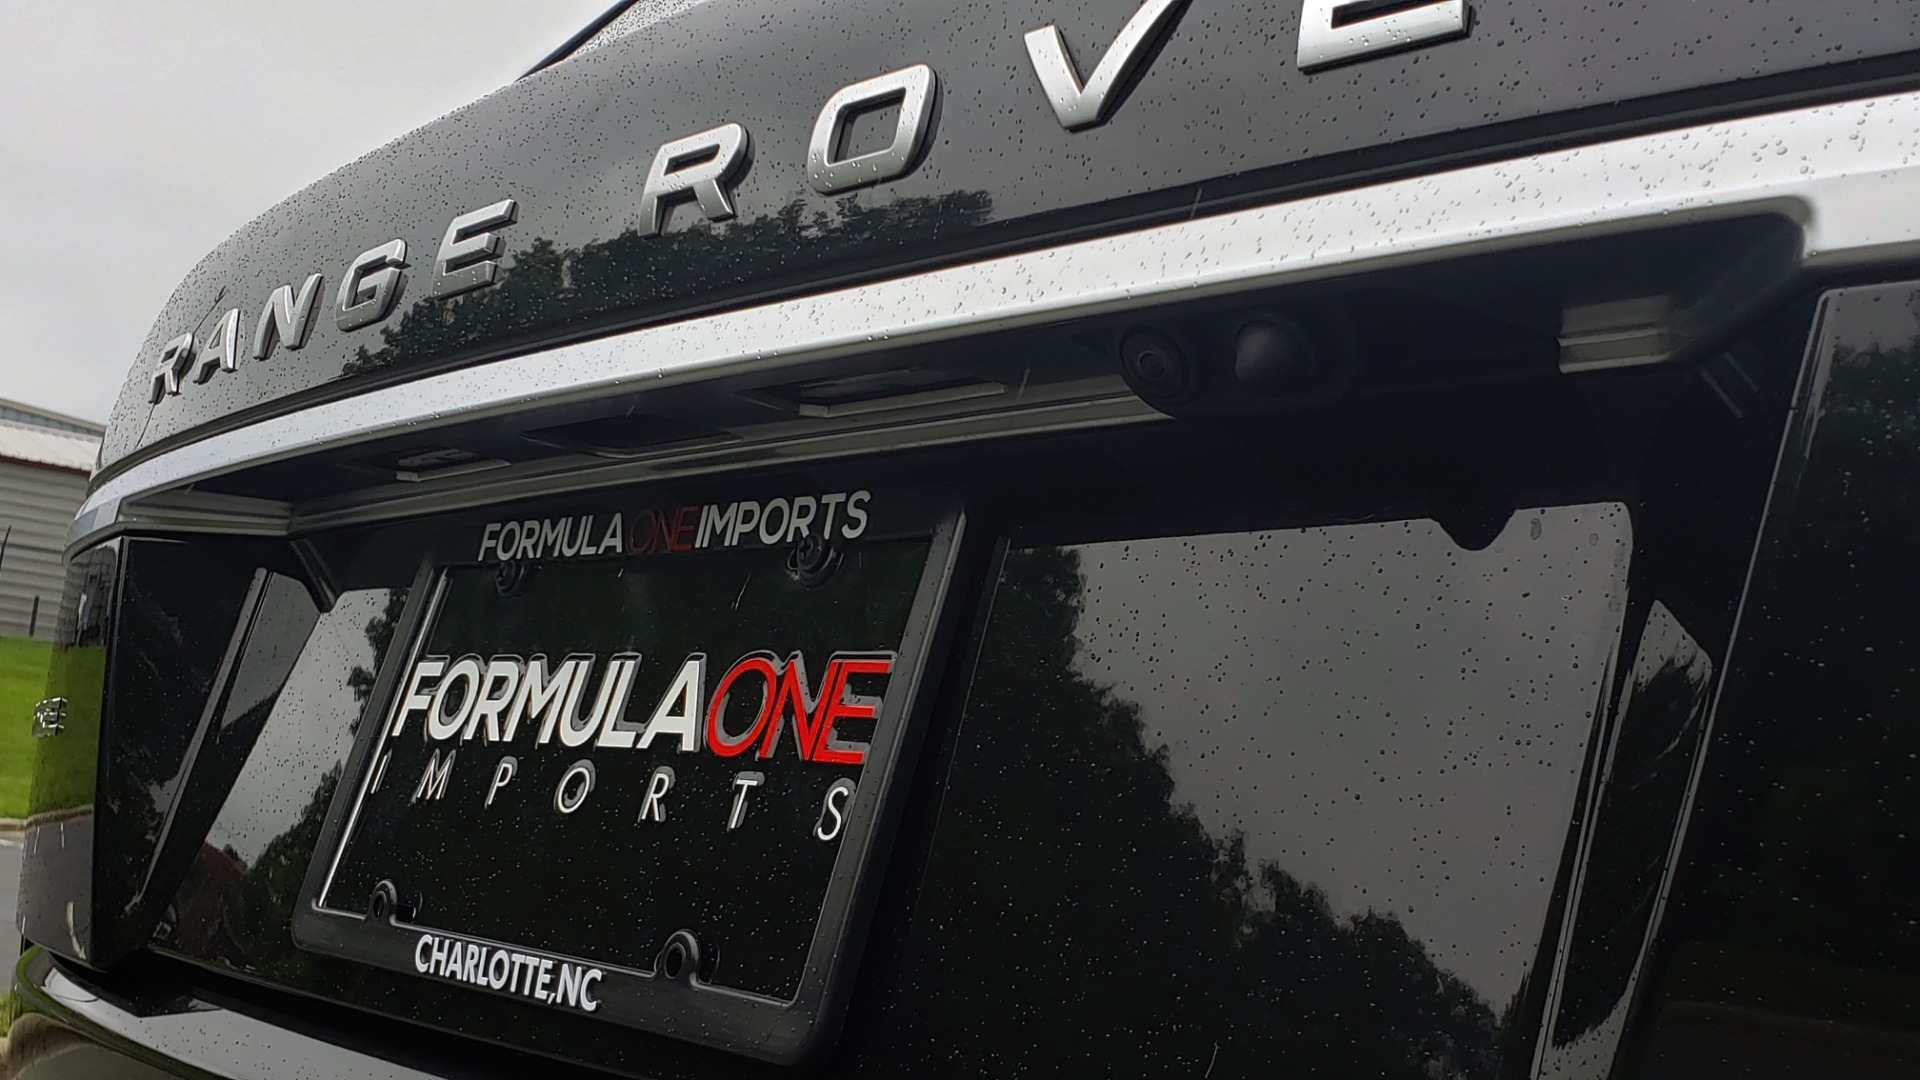 Used 2016 Land Rover Range Rover HSE 3.0L SC V6 / NAV / PANO-ROOF / VENT SEATS / REARVIEW / BLIND SPOT for sale Sold at Formula Imports in Charlotte NC 28227 37